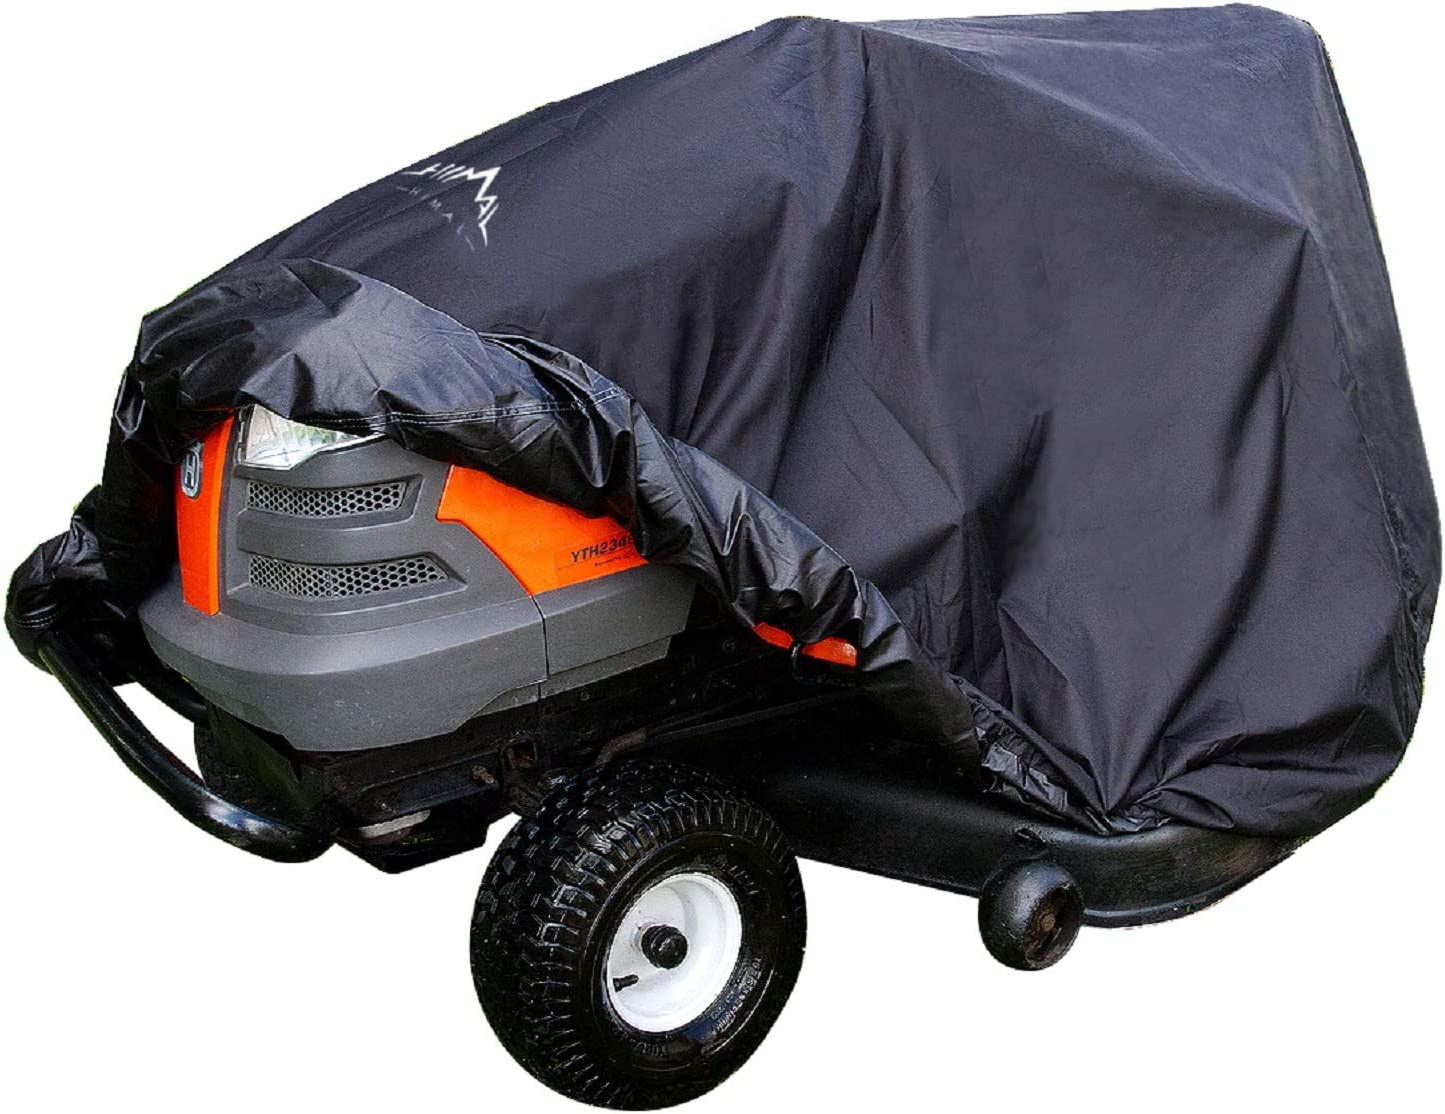 Push Lawn Mower Cover Outdoor Lawnmower Cover Heavy Duty 600D Waterproof Covers UV Protection Universal Fit with Drawstring /& Cover Storage Bag Lawn Mower Cover